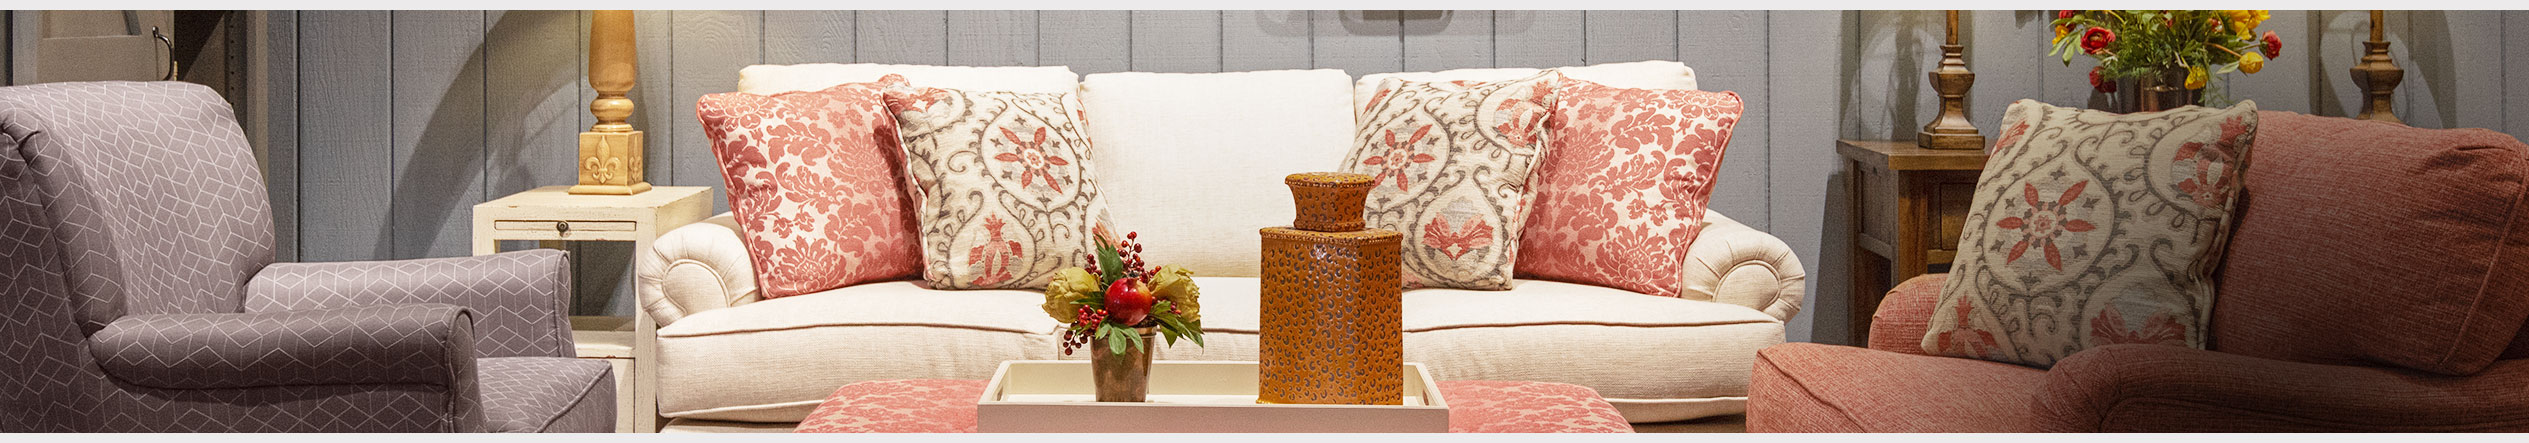 New Reach Furniture Co-Op at Jordan's Furniture stores in CT, MA, NH, and RI